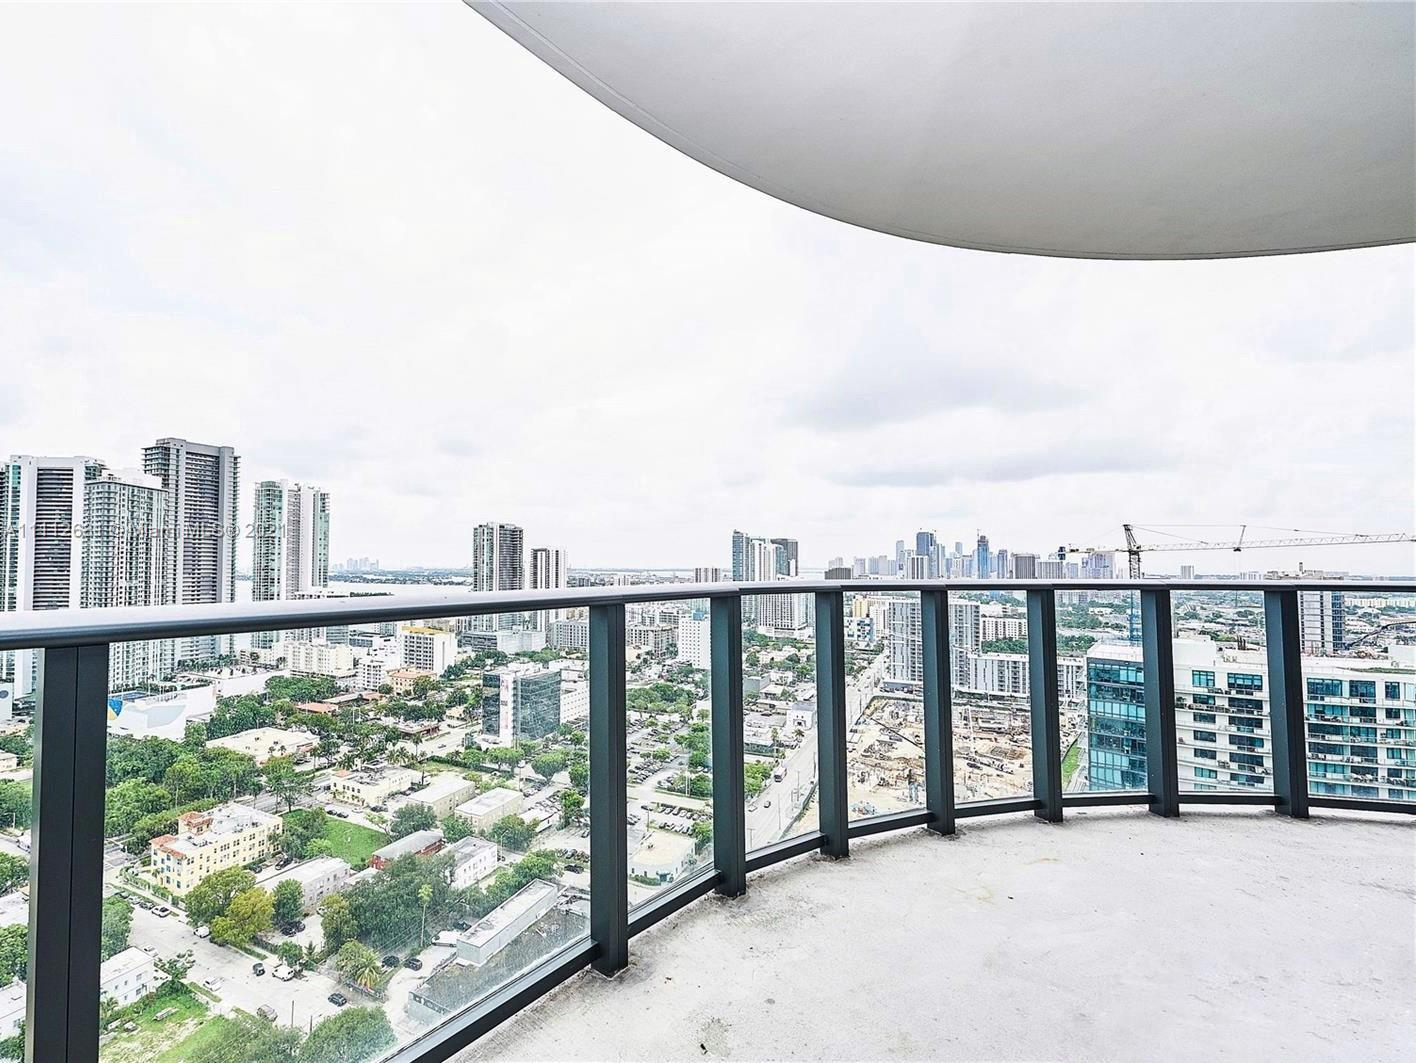 Corner 2/2 unit with amazing city and bay views. Open floor plan perfect for today's living needs, w